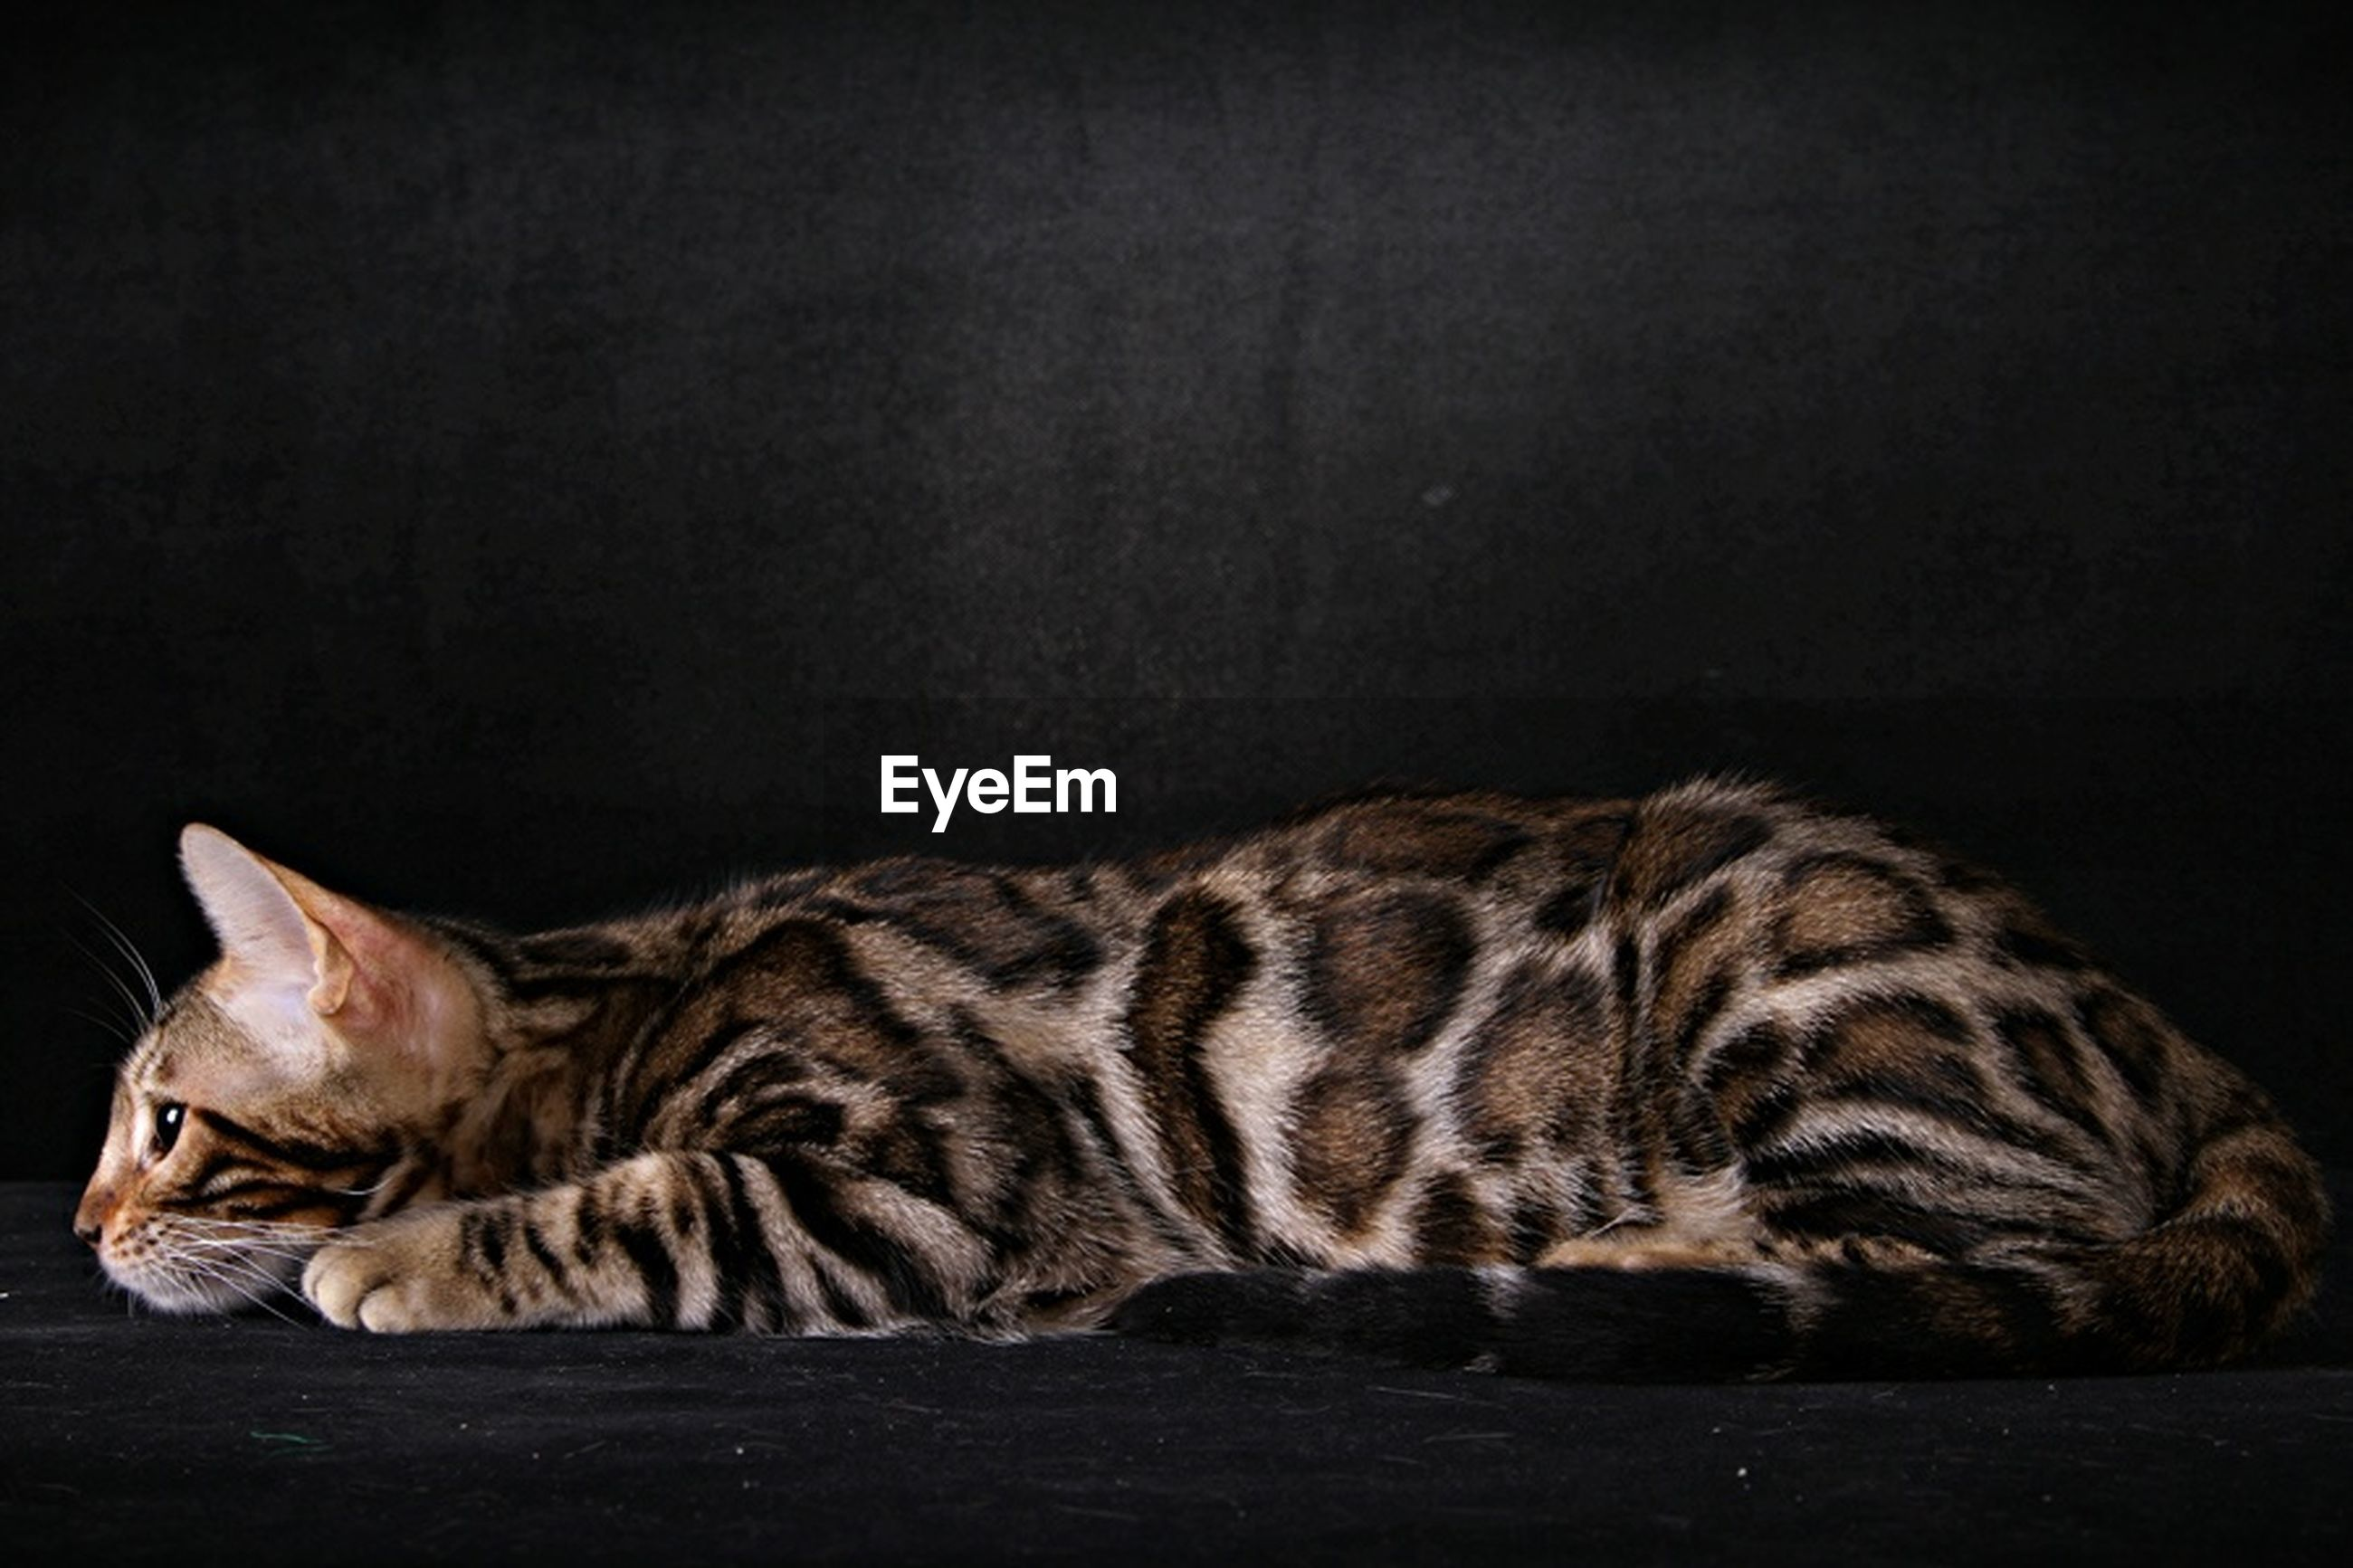 animal themes, one animal, domestic cat, mammal, cat, relaxation, feline, resting, pets, lying down, domestic animals, whisker, sleeping, side view, indoors, close-up, eyes closed, no people, relaxing, looking away